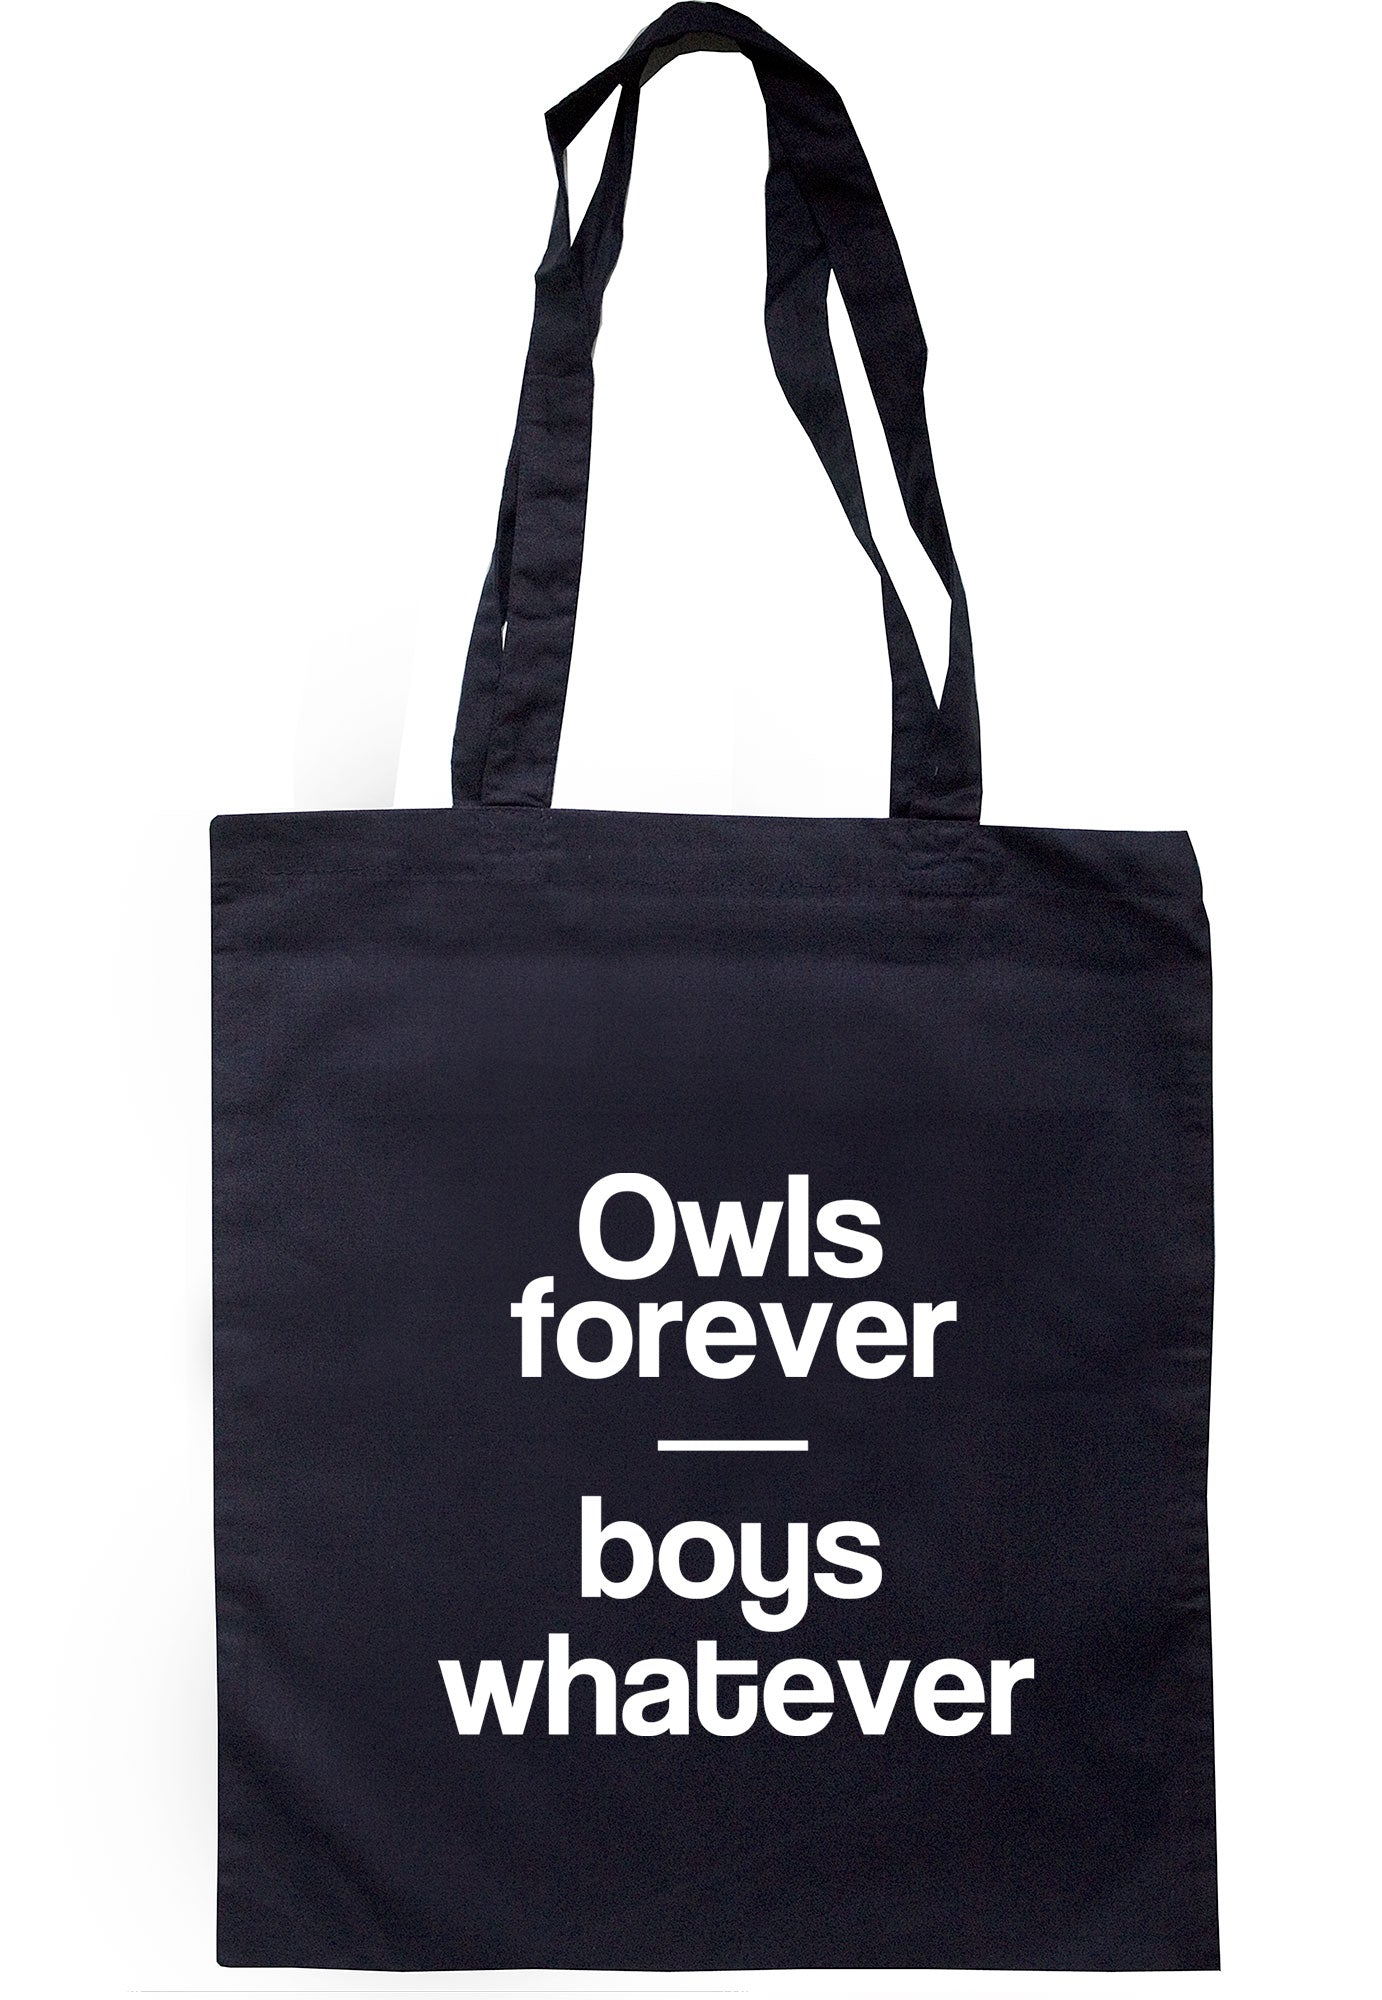 Owls Forever Boys Whatever Tote Bag S0766